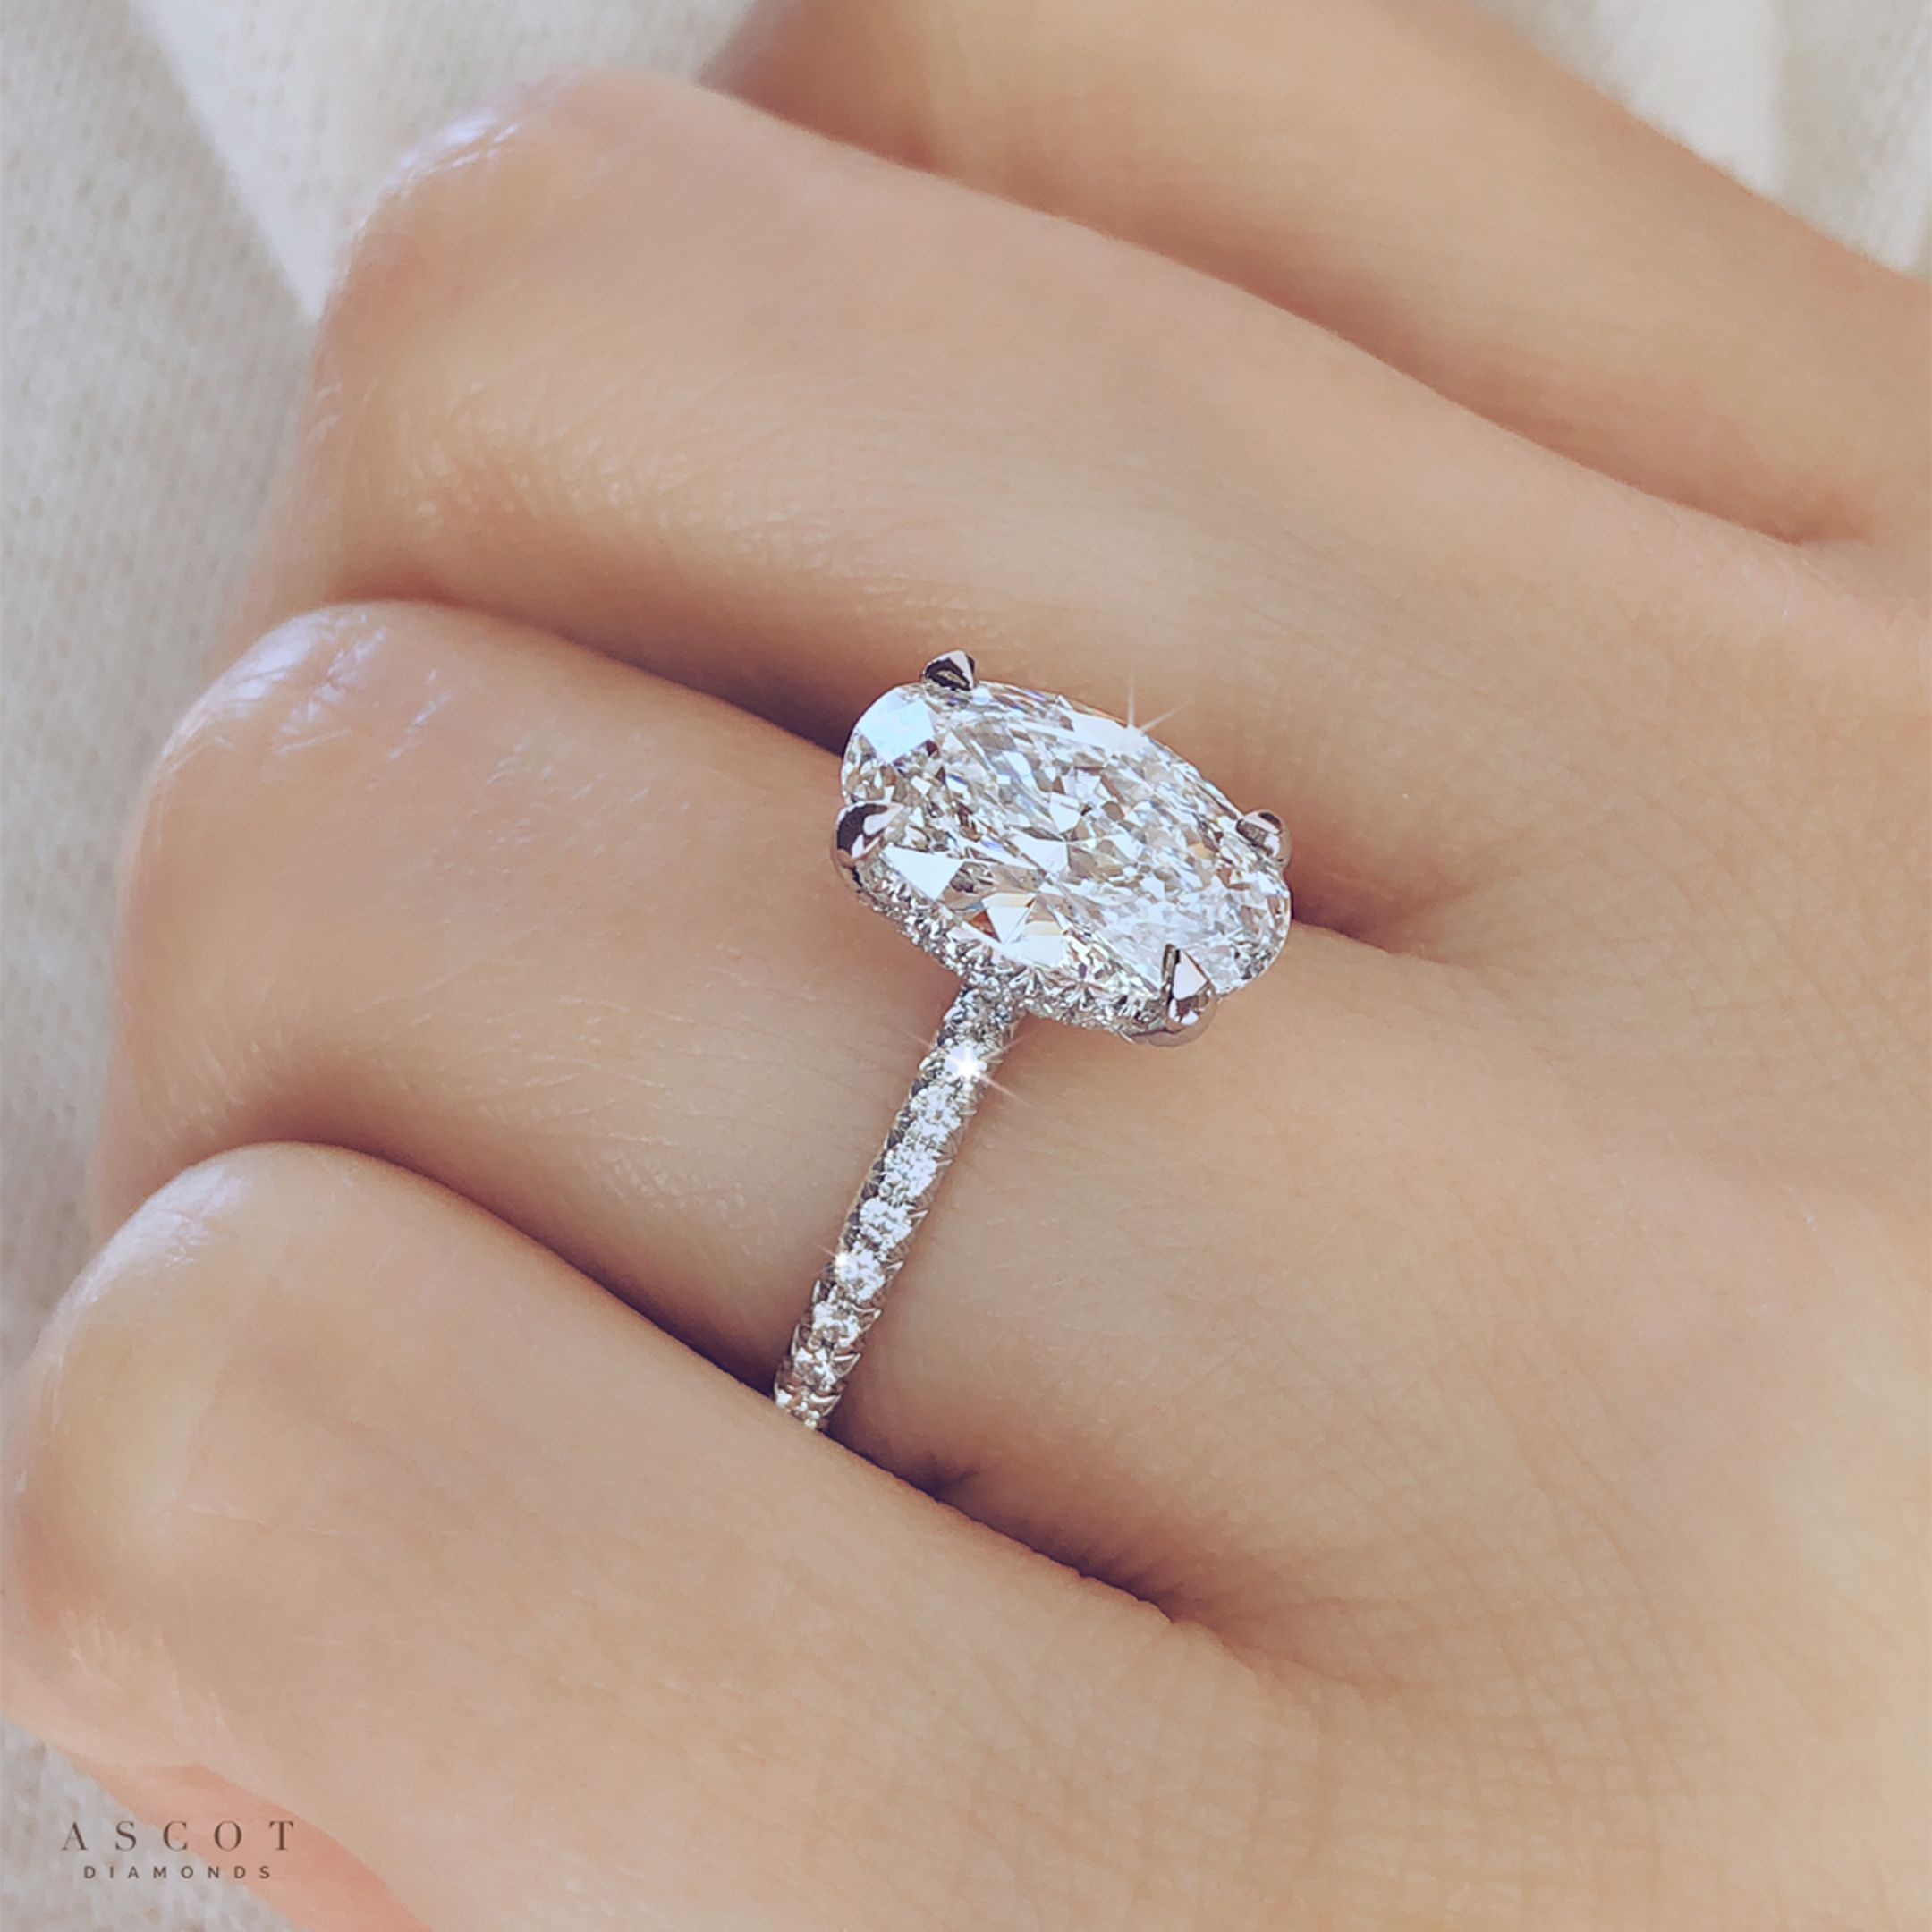 2 Ct Oval Diamond Solitaire Engagement Ring Ascot Diamonds In 2020 Oval Solitaire Engagement Ring Oval Diamond Engagement Oval Diamond Engagement Ring